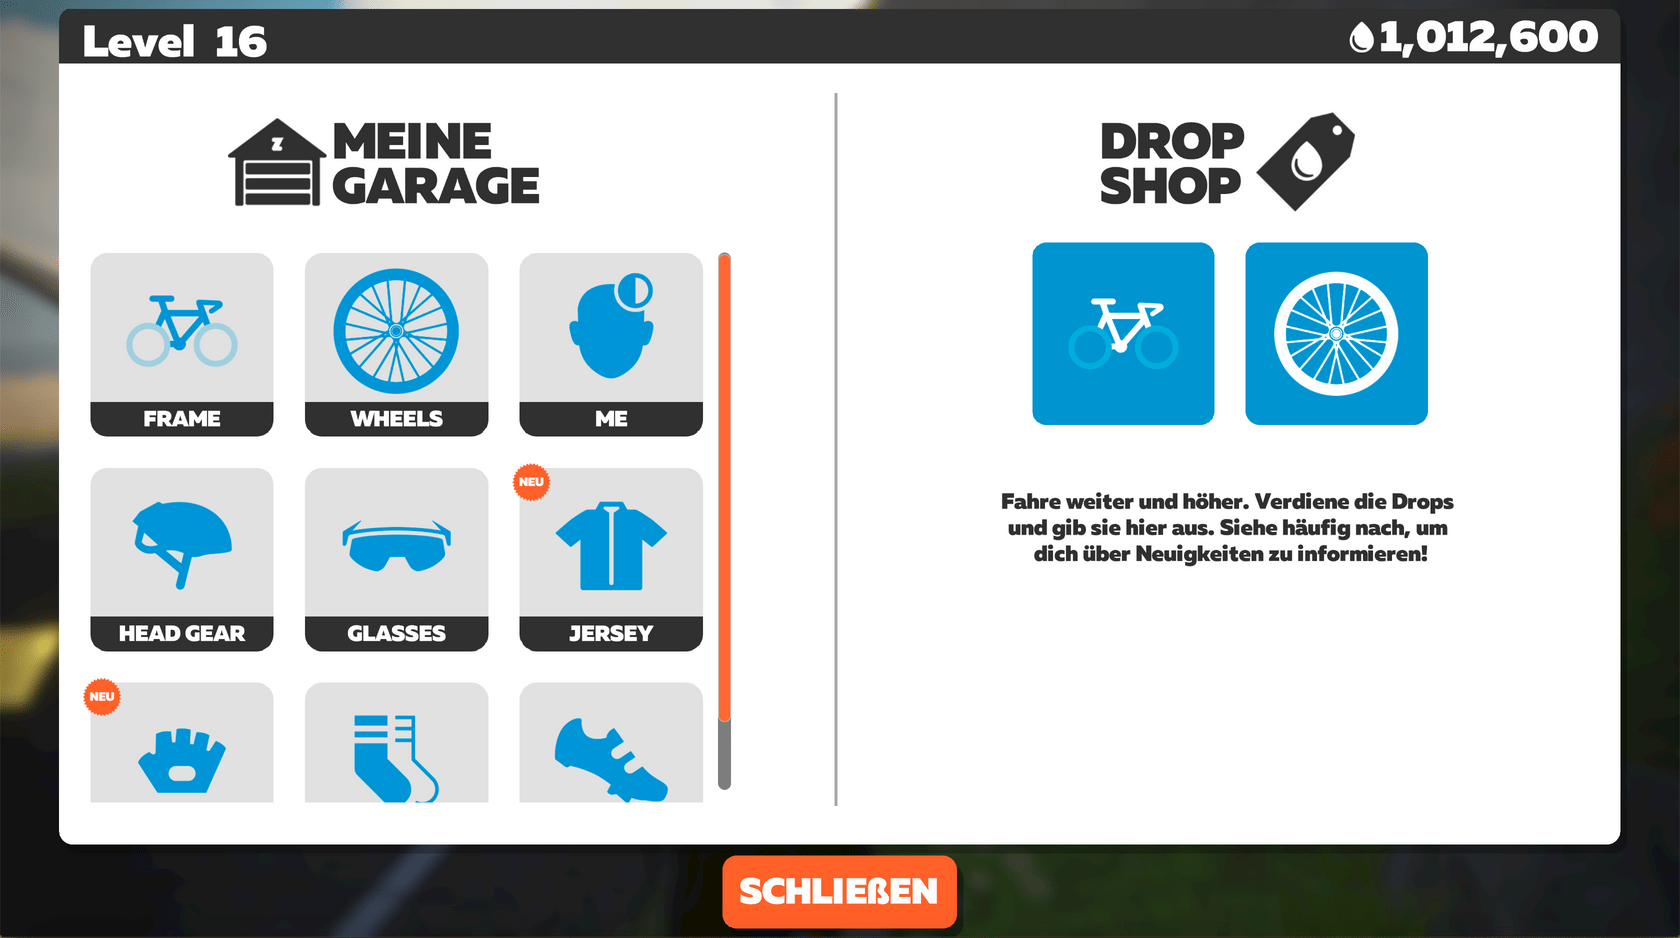 Links die Garage, Rechts der Drop Shop